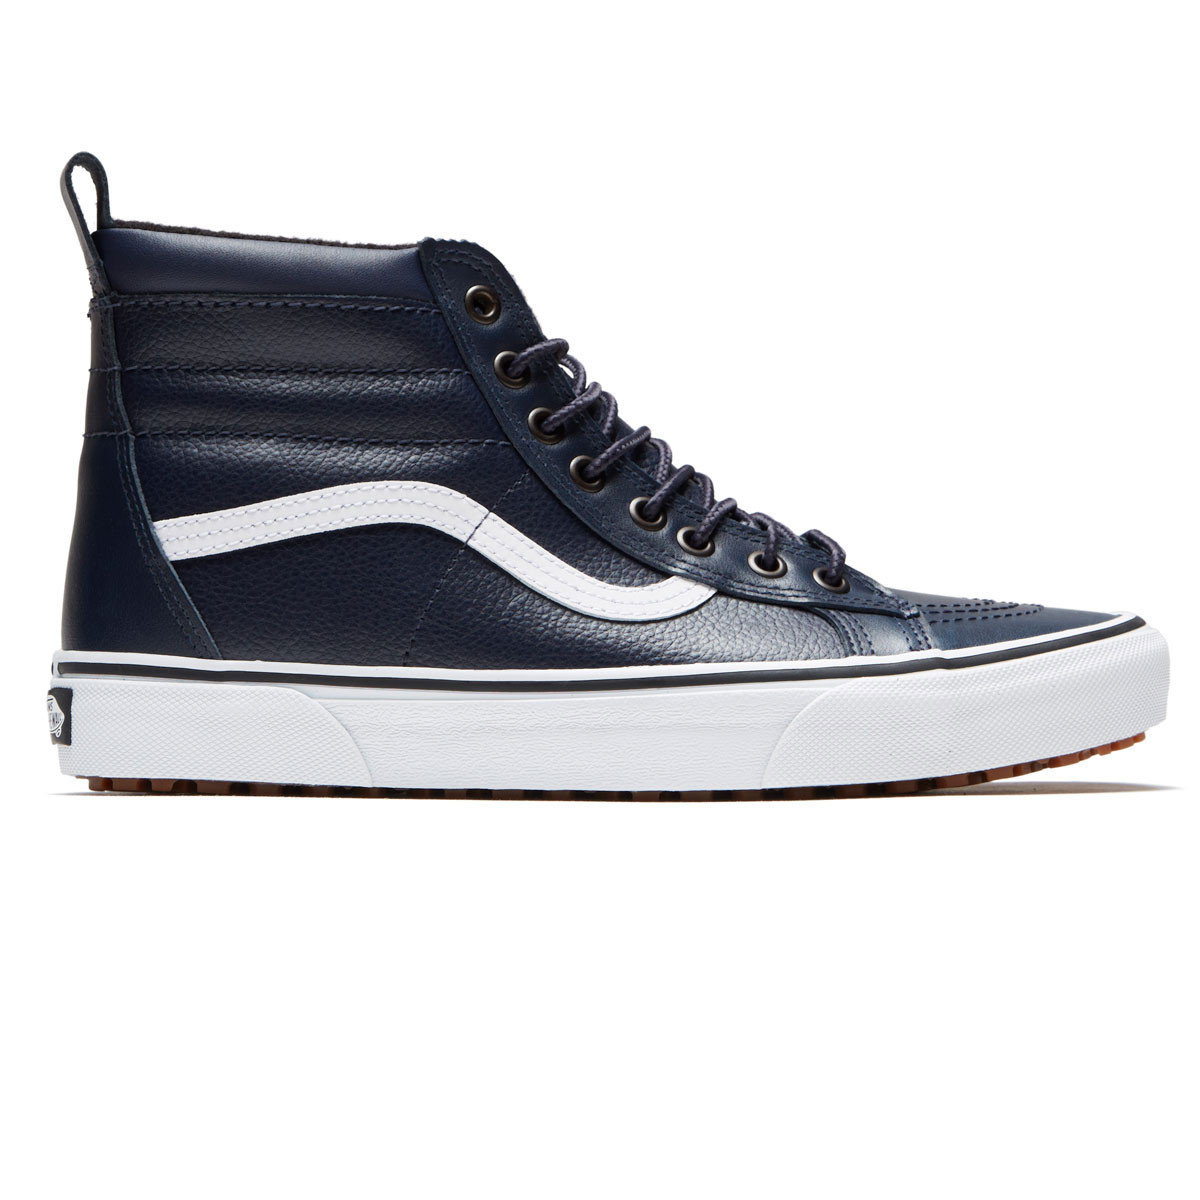 e73f636af5d605 Vans Sk8-Hi MTE Shoes - Sky Captain Leather - 8.0